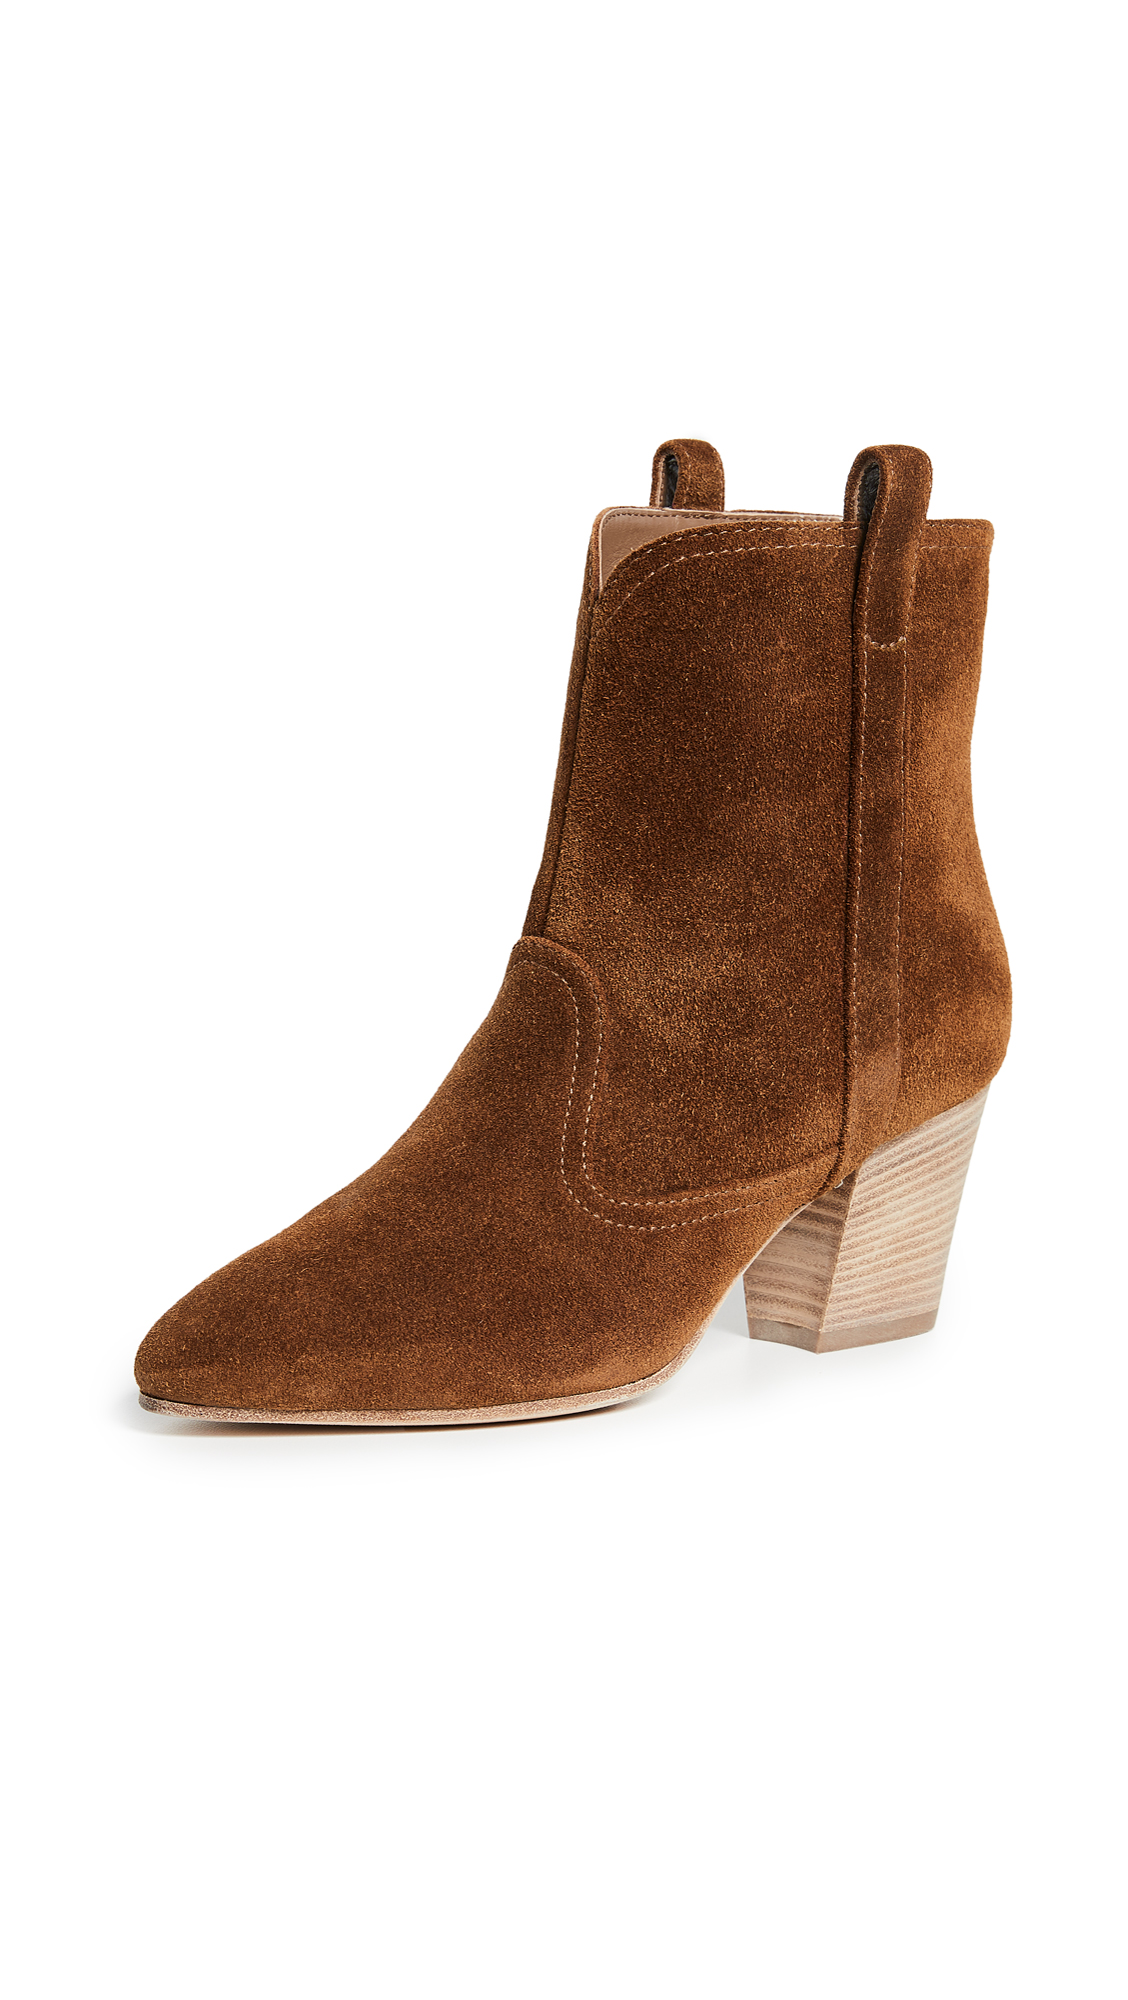 Sheryll Suede Ankle Boots in Camel